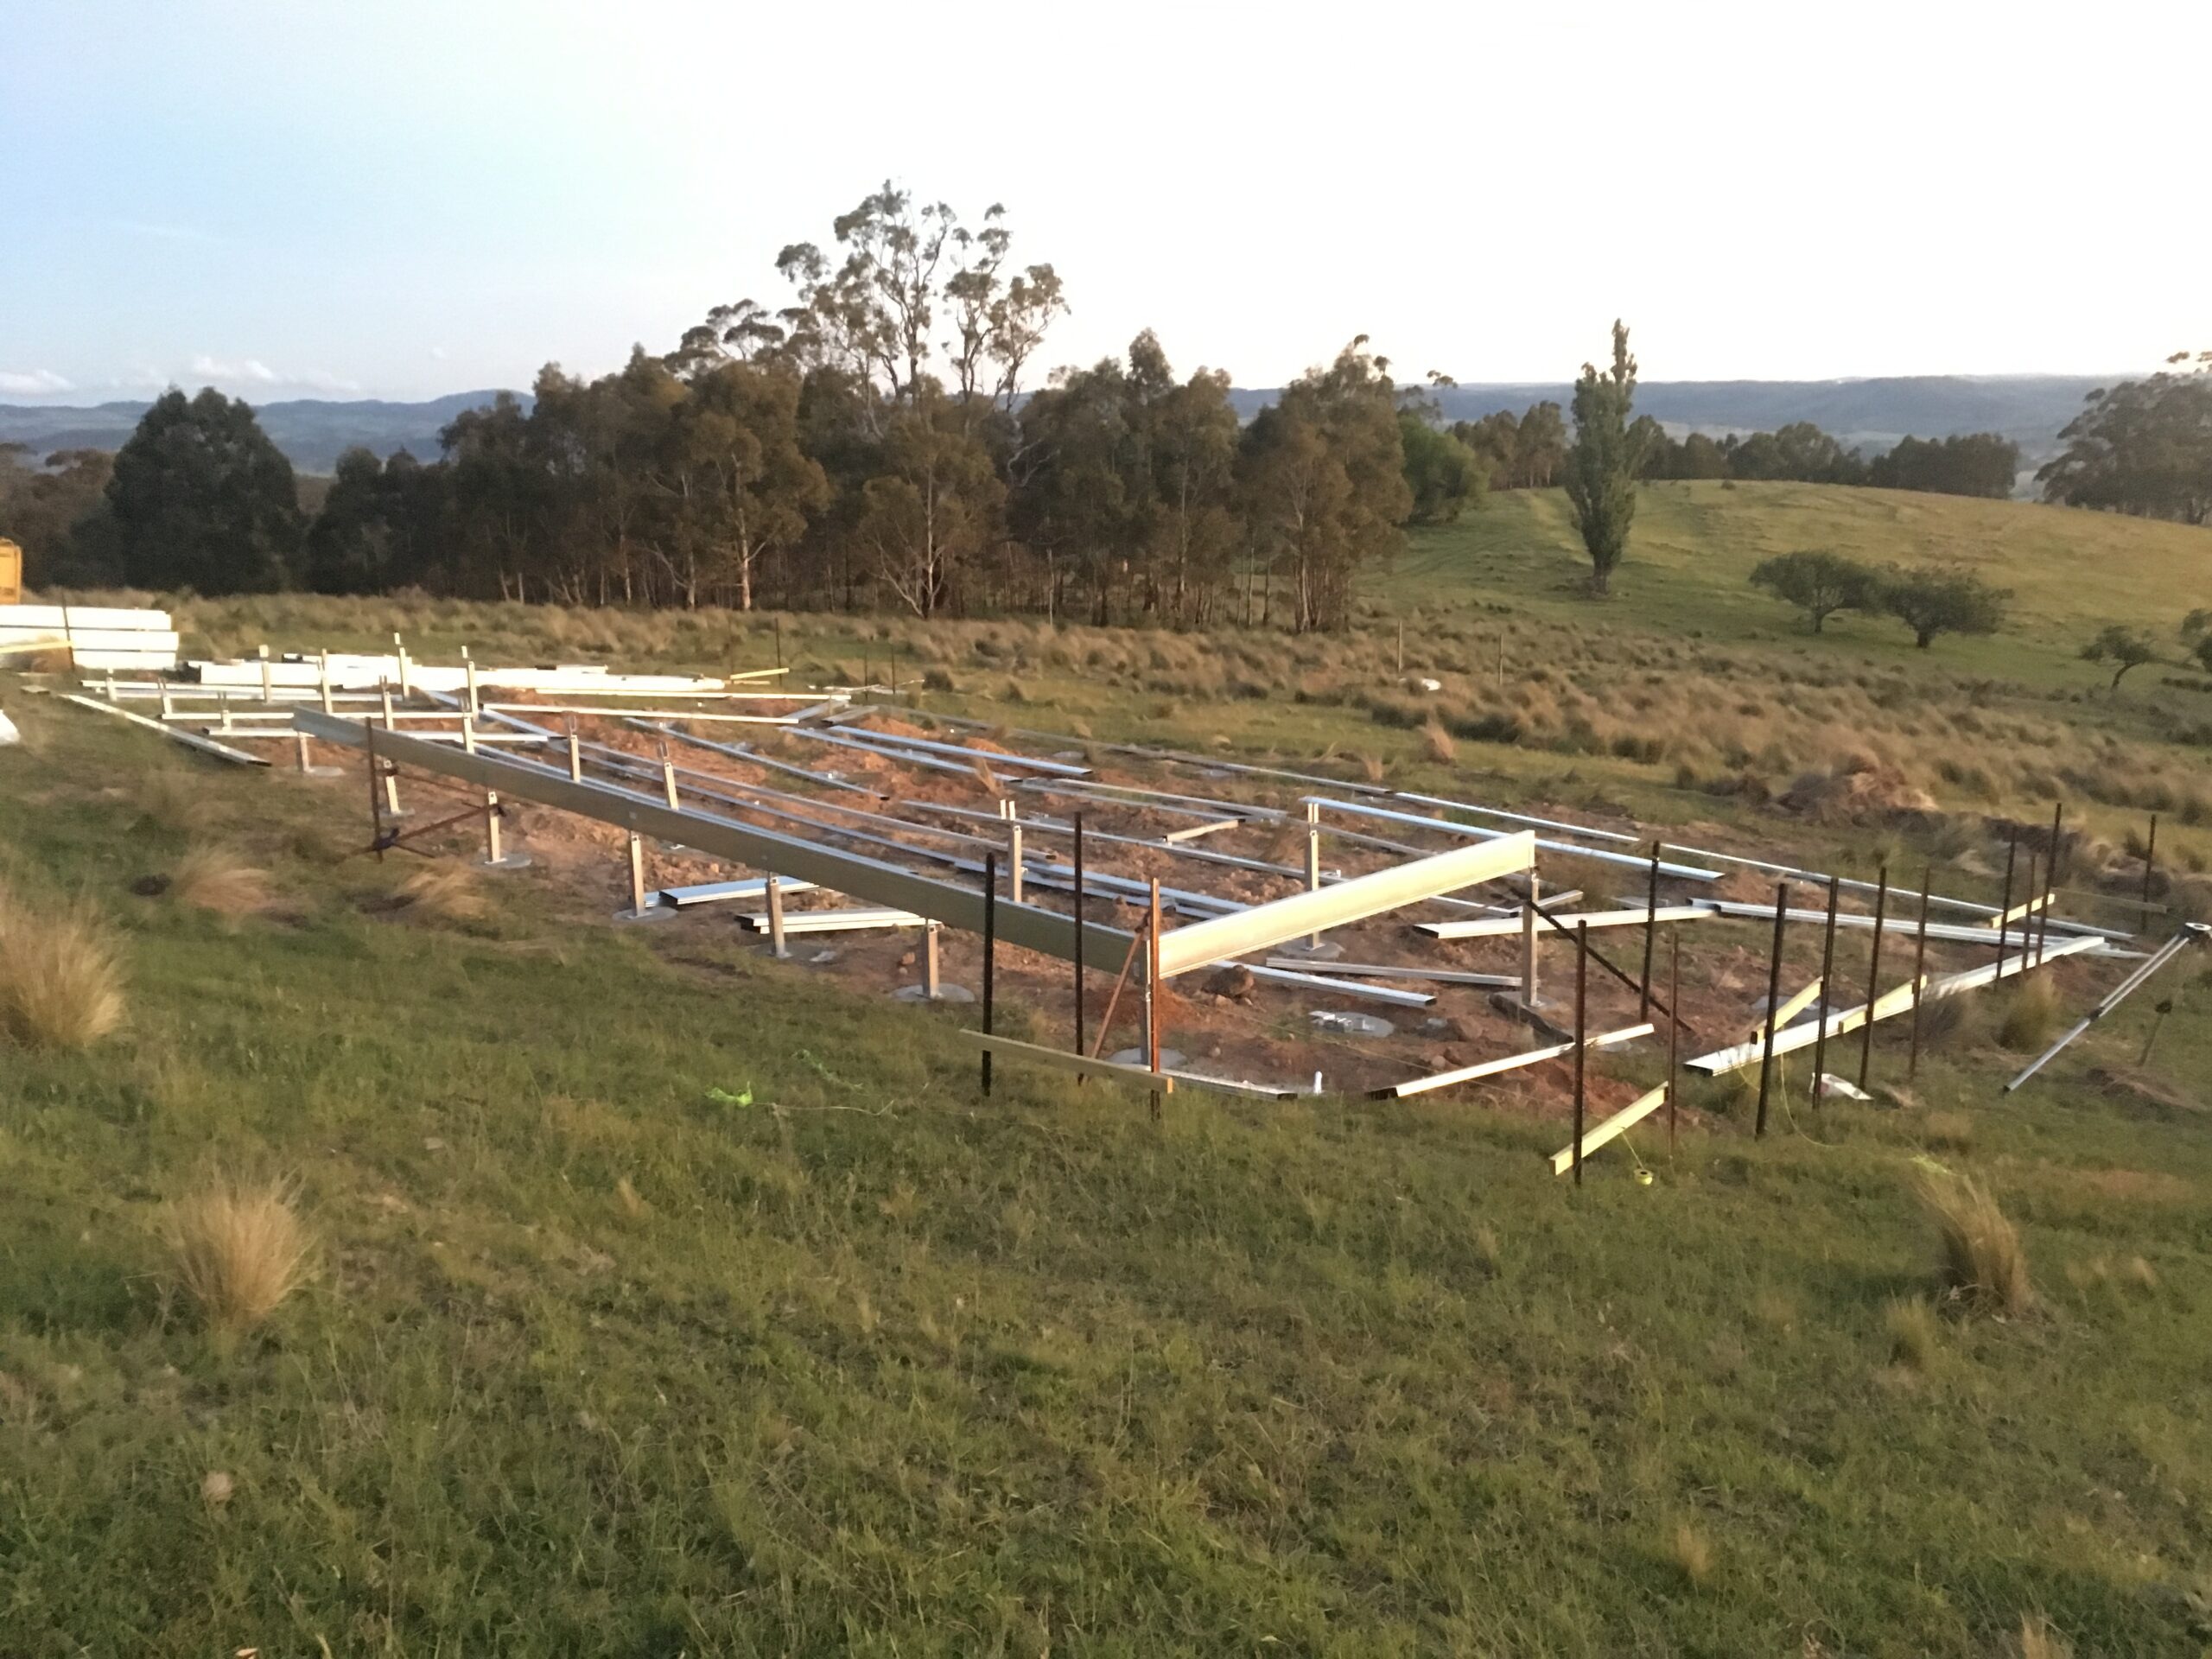 Boxspan floor frame construction by owner builder just started on a sloping site in a bushfire prone rural area